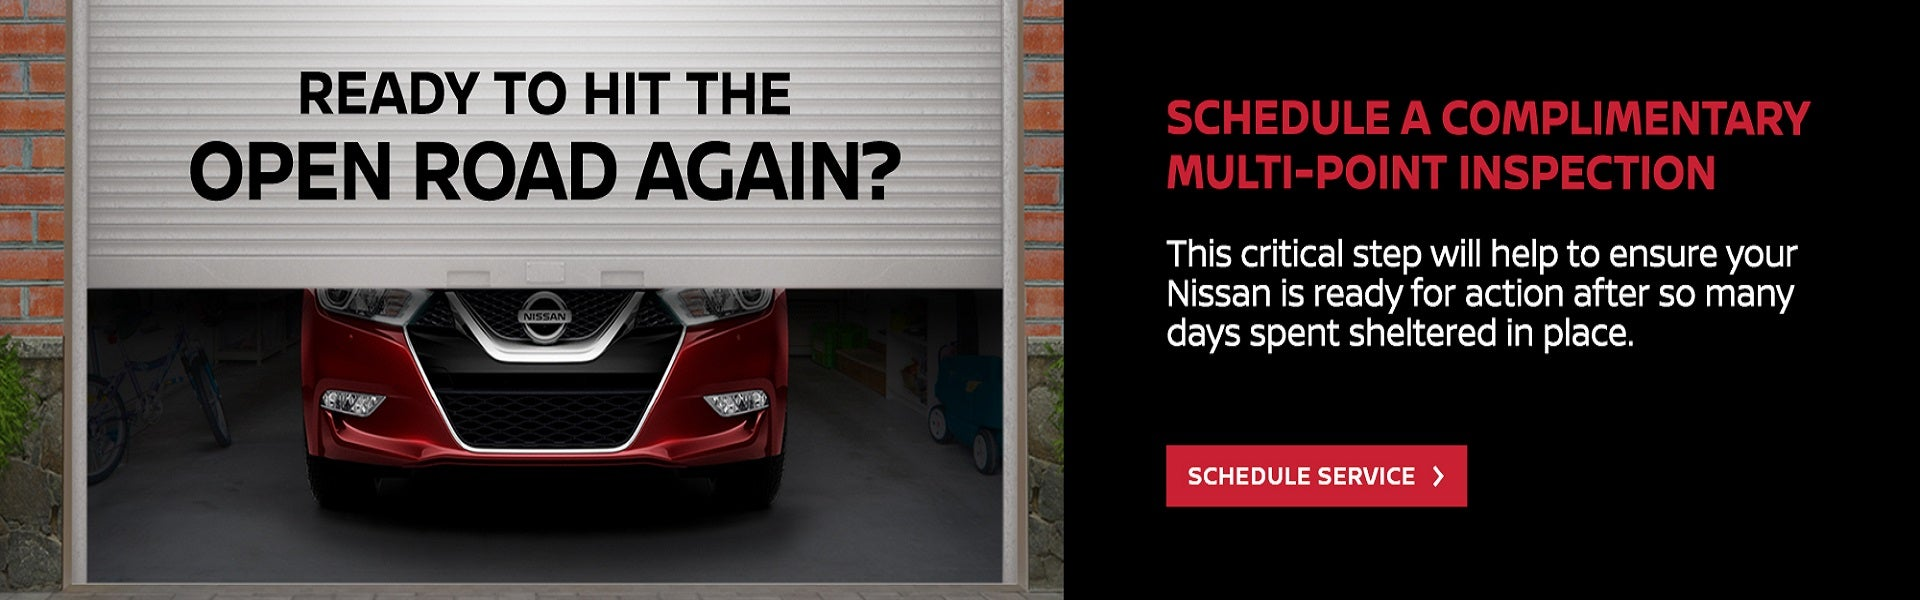 nissan of lithia springs nissan sales in lithia springs ga nissan of lithia springs nissan sales